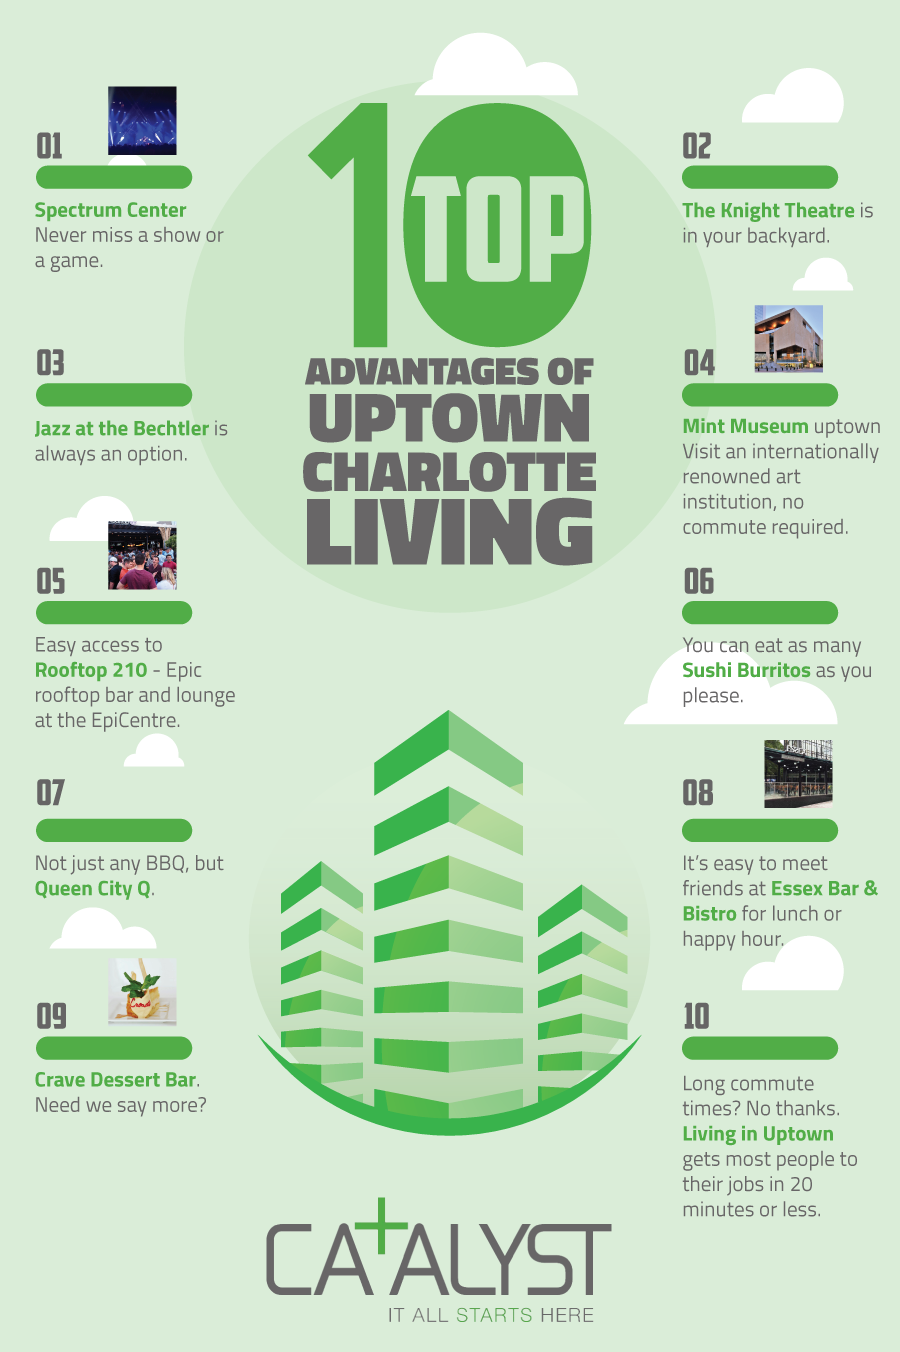 Advantages of Uptown Charlotte Living Infographic